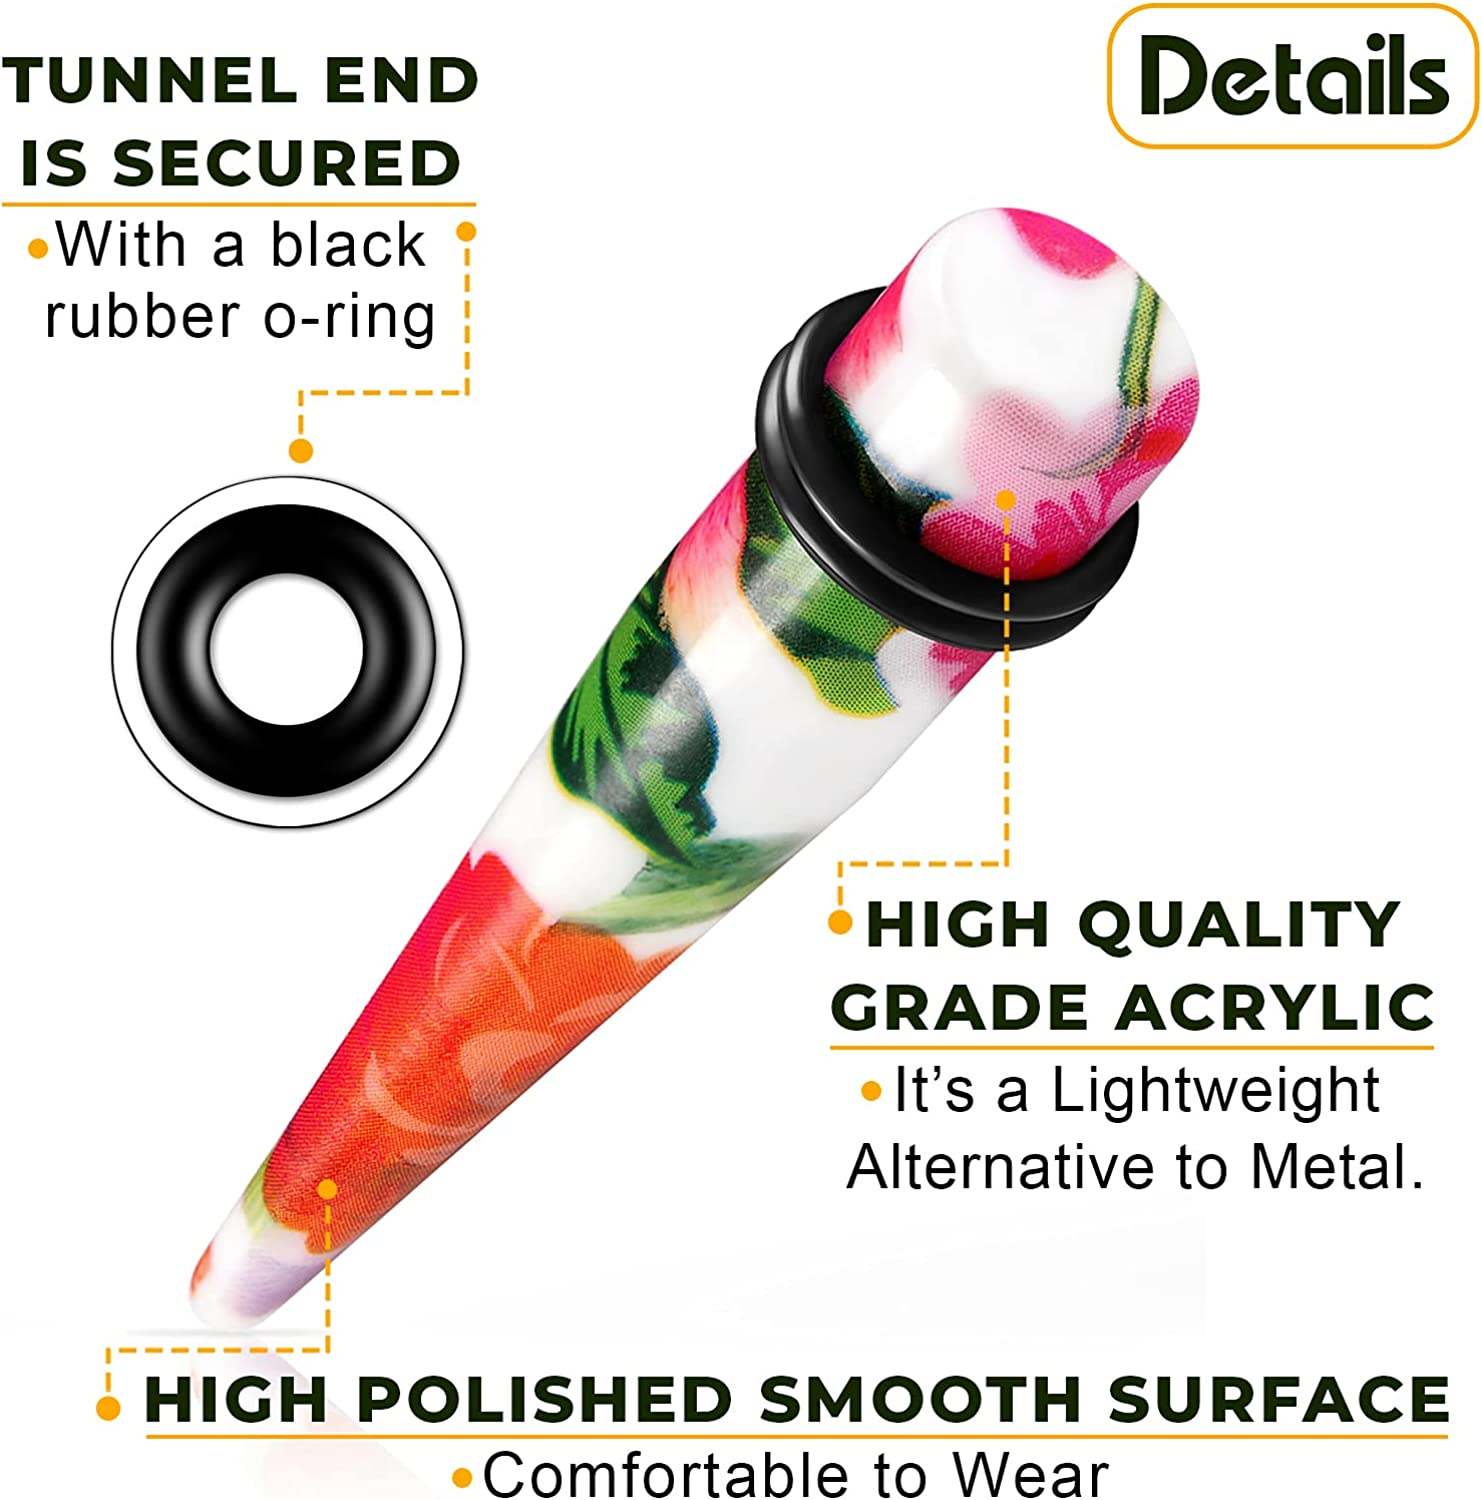 BIG GAUGES Pair of Colorful Straight UV Acrylic Taper Expander O-Rings Piercing Jewelry Ear Stretcher Plugs Stretching Earring Lobe